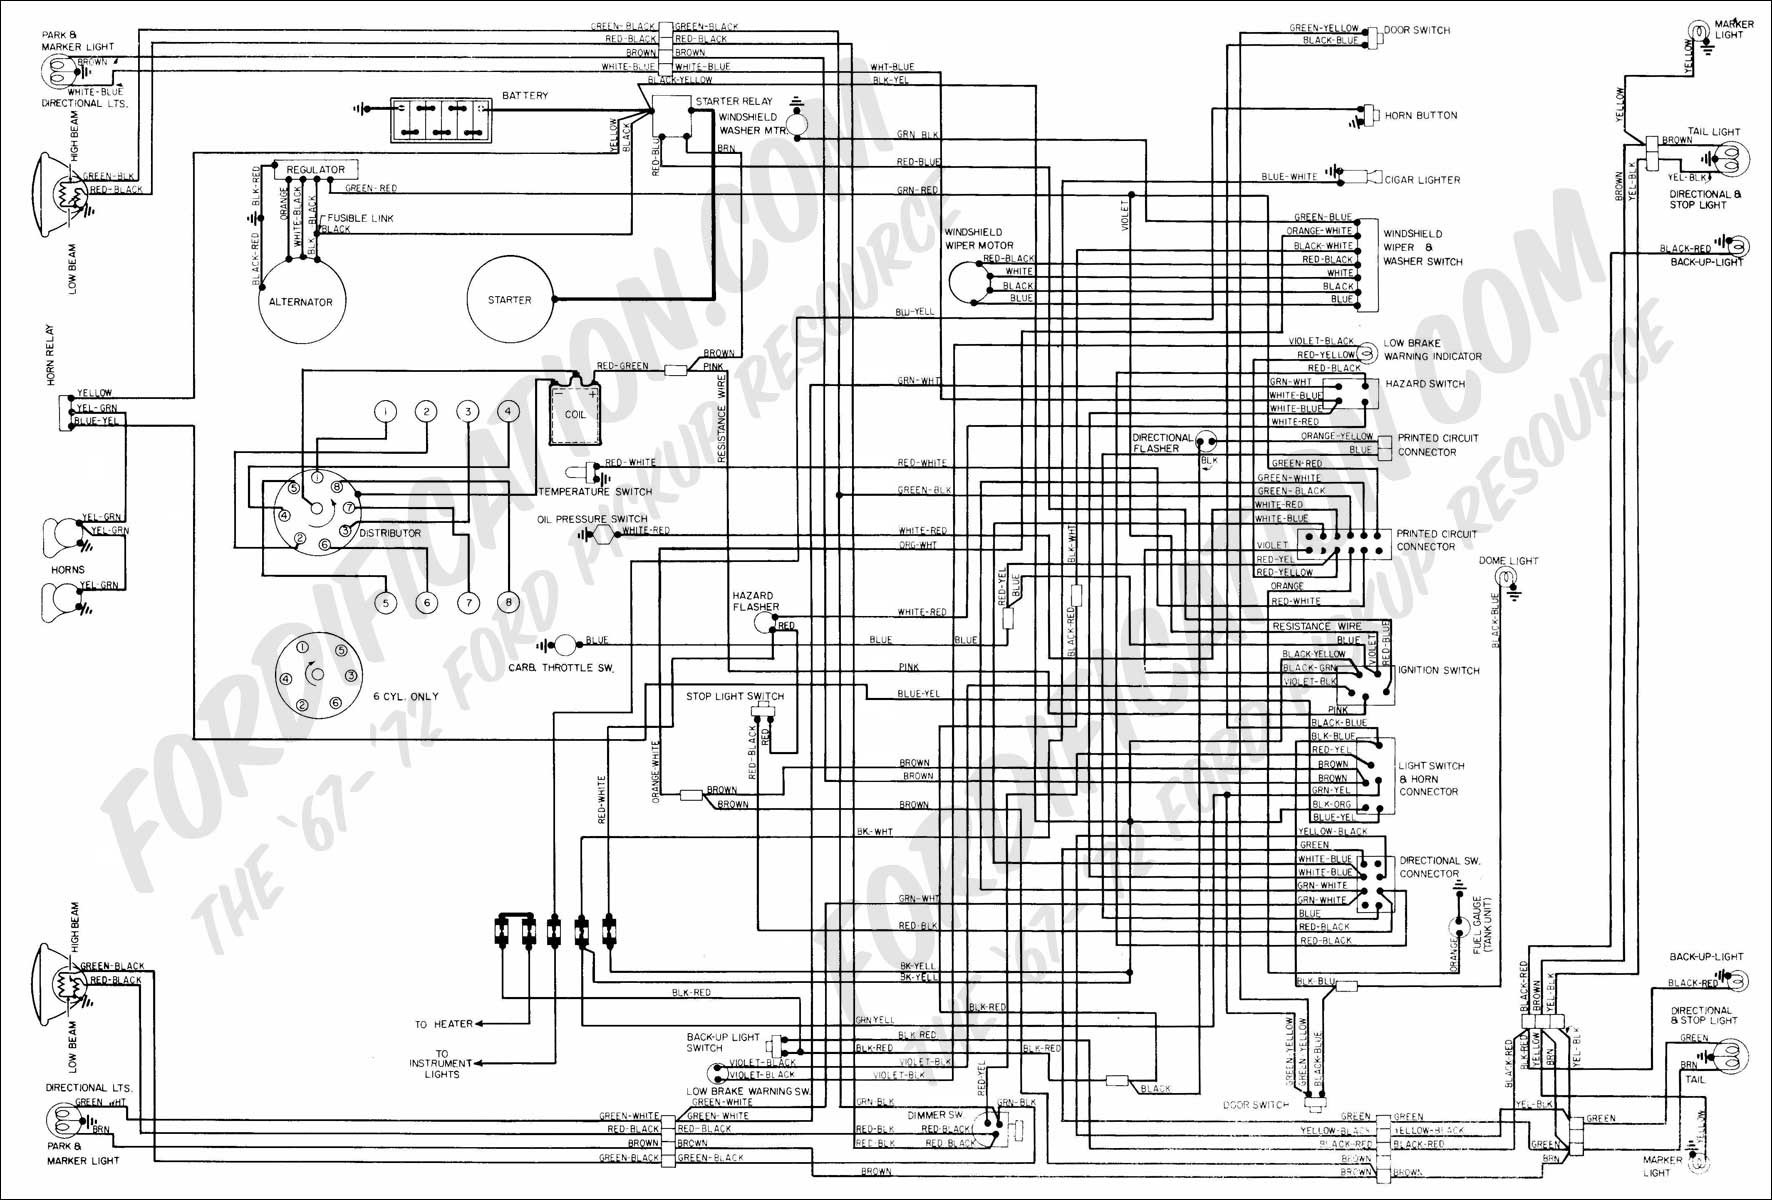 2003 Ford Windstar Headlamp Wiring Diagram Another Blog About Fuse Box 03 Saturn Ion 1999 Rh Detoxicrecenze Com